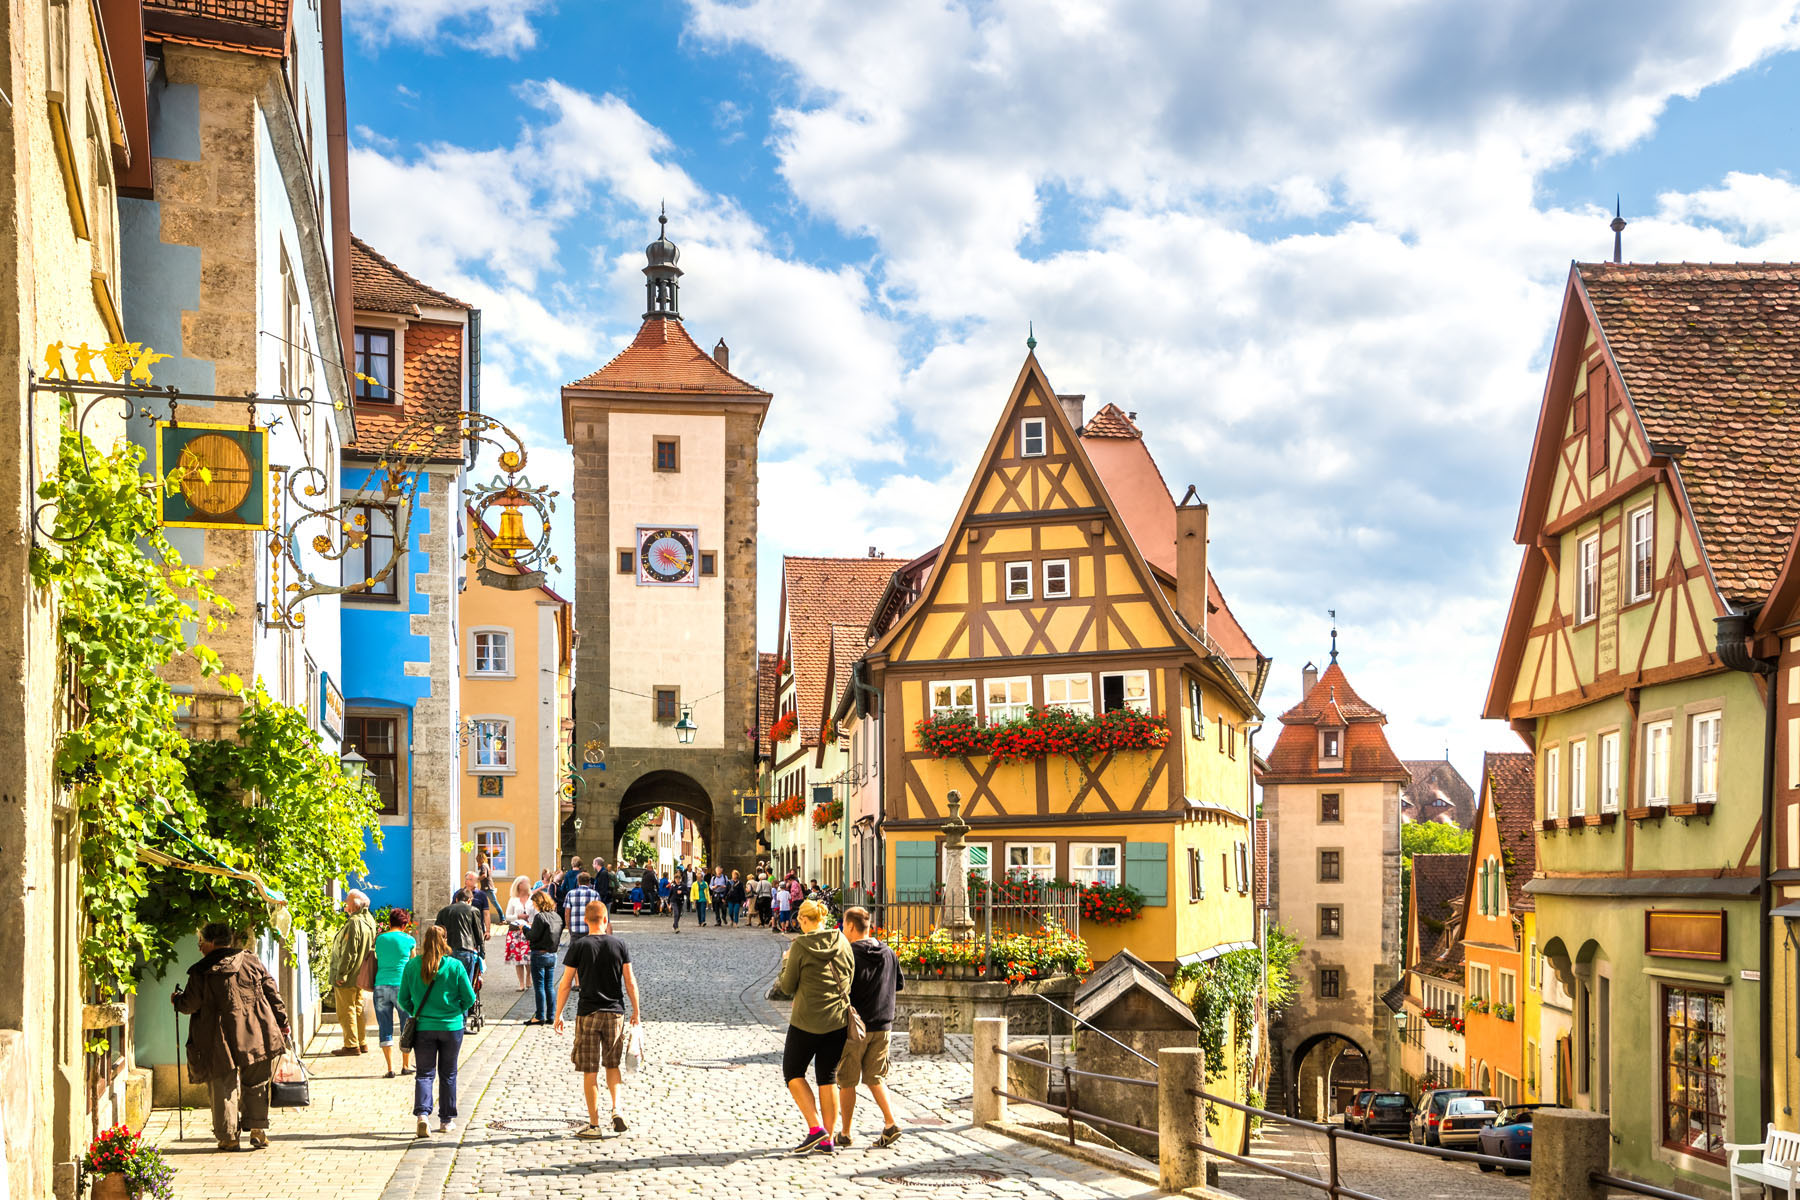 Germany-Rothenburg_379818058